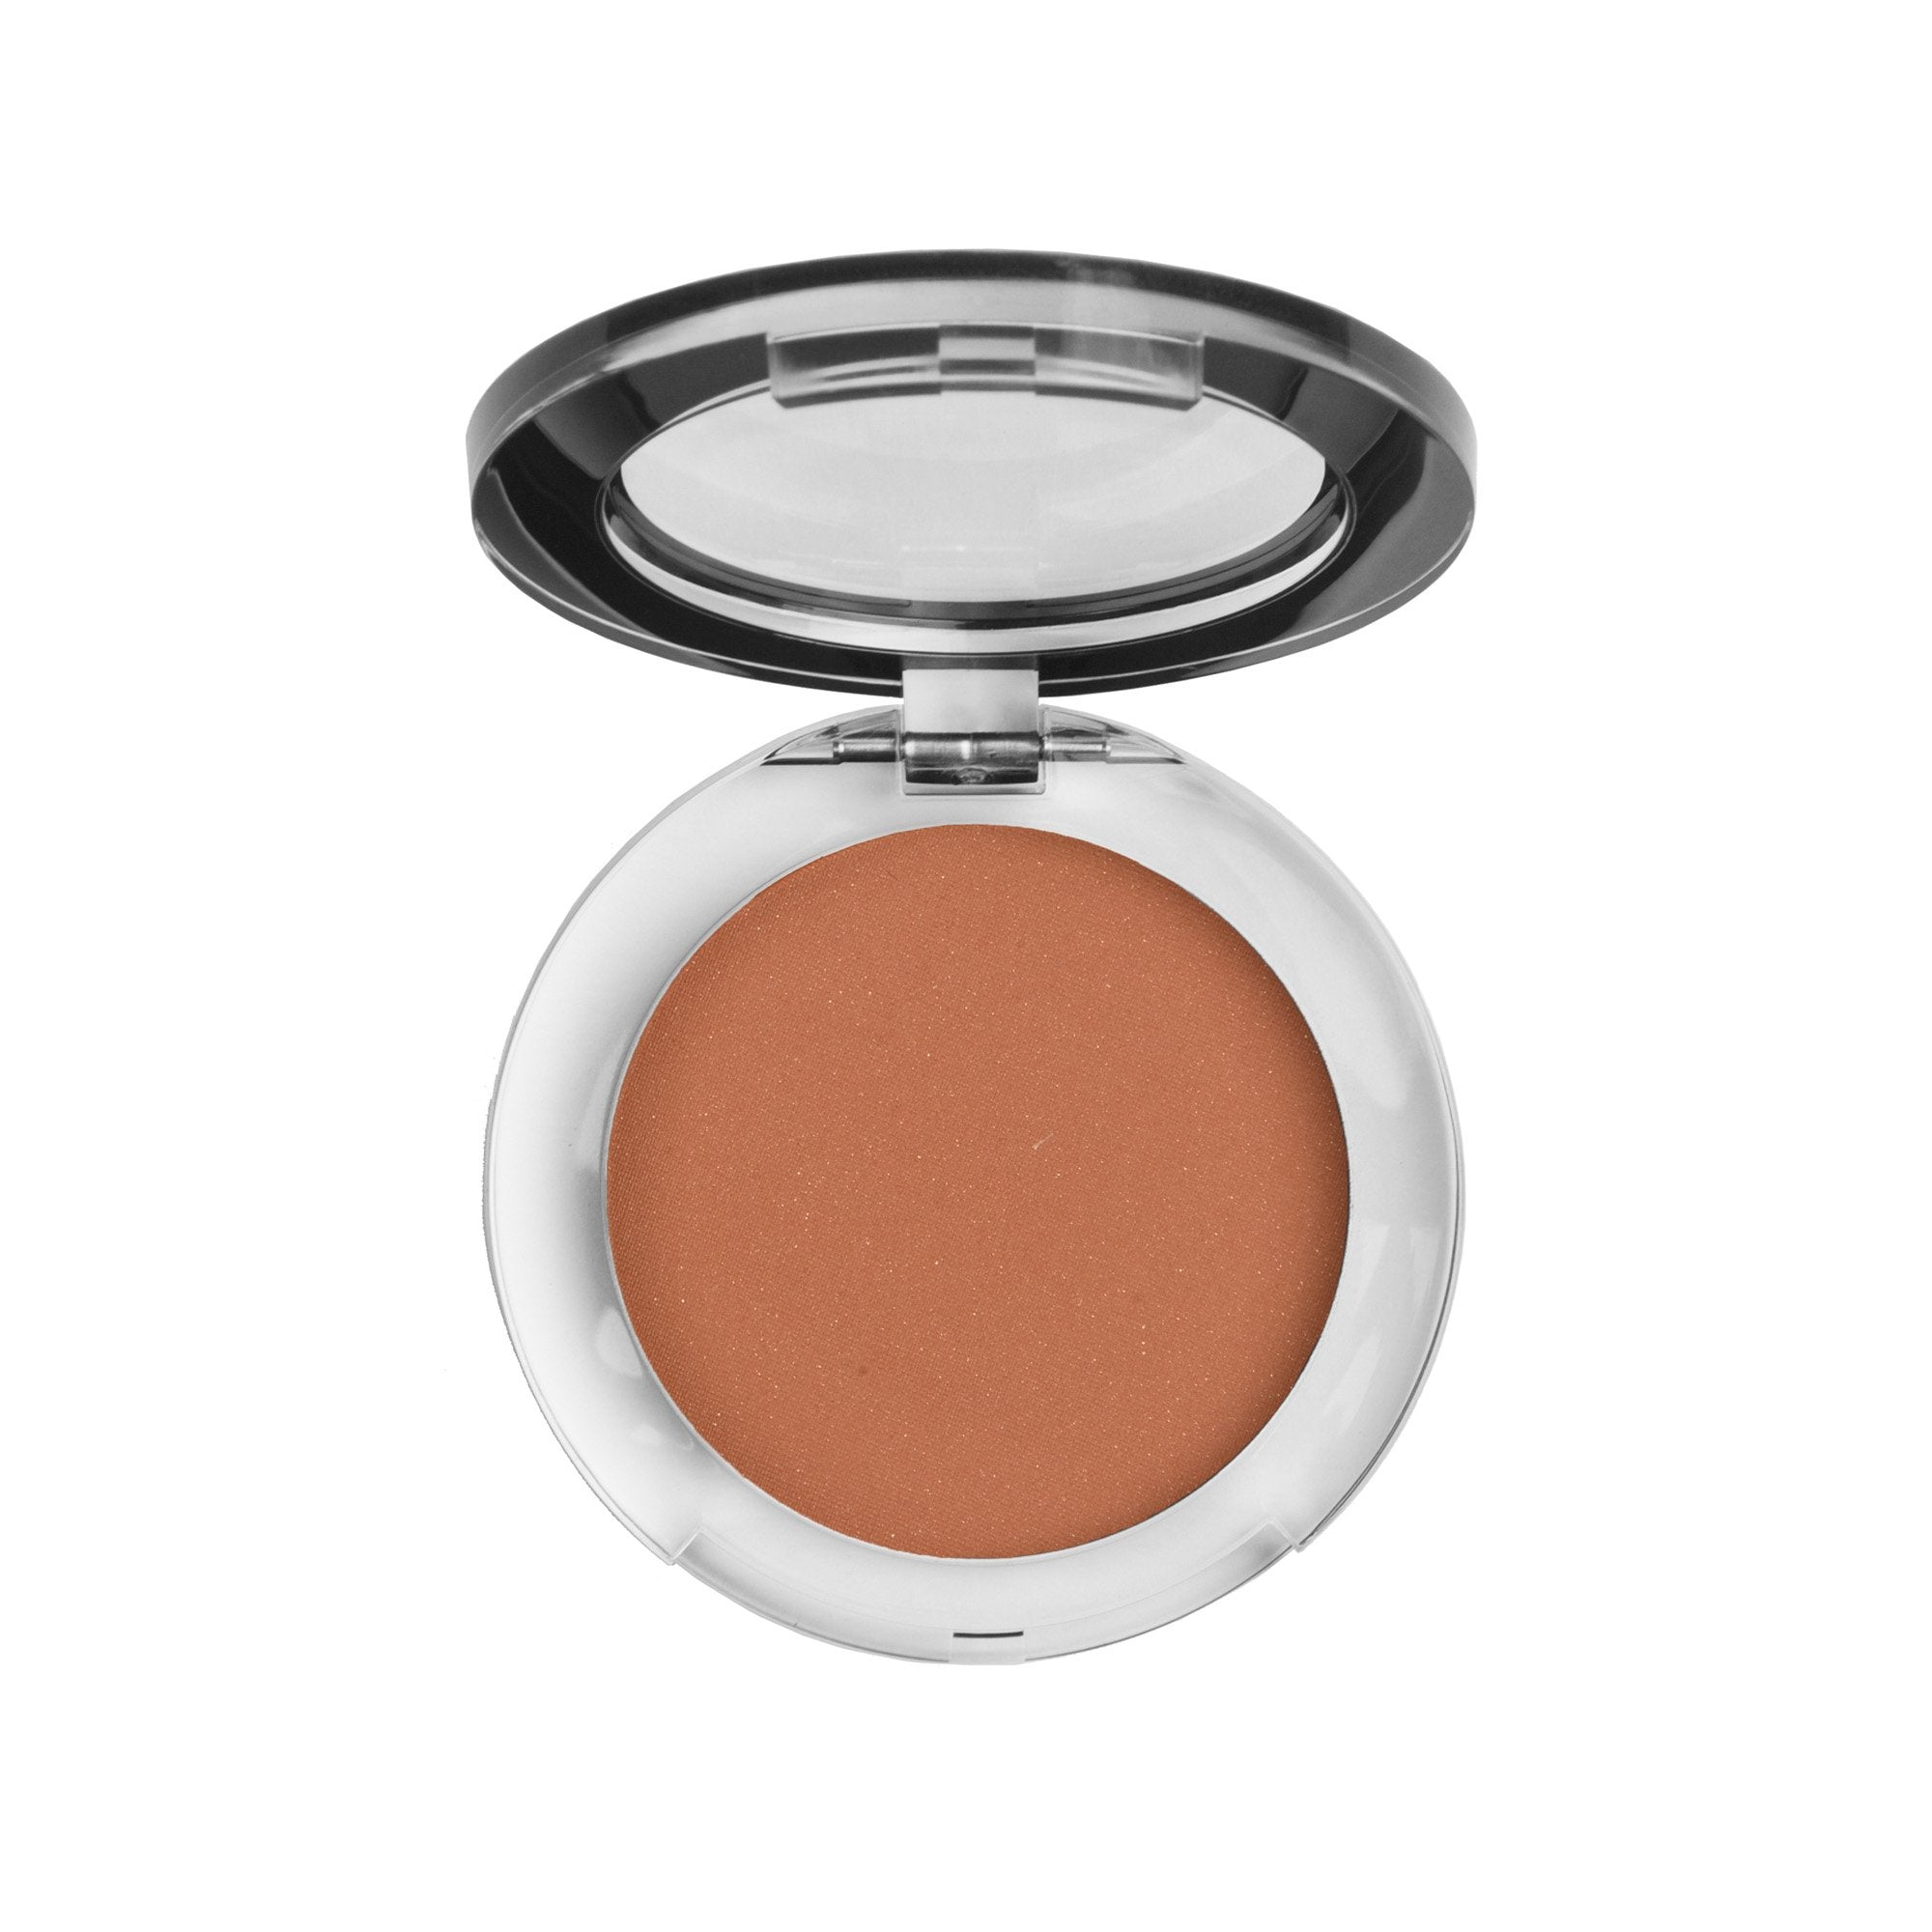 SUN TOUCH BRONZING POWDER - Studio Make Up US